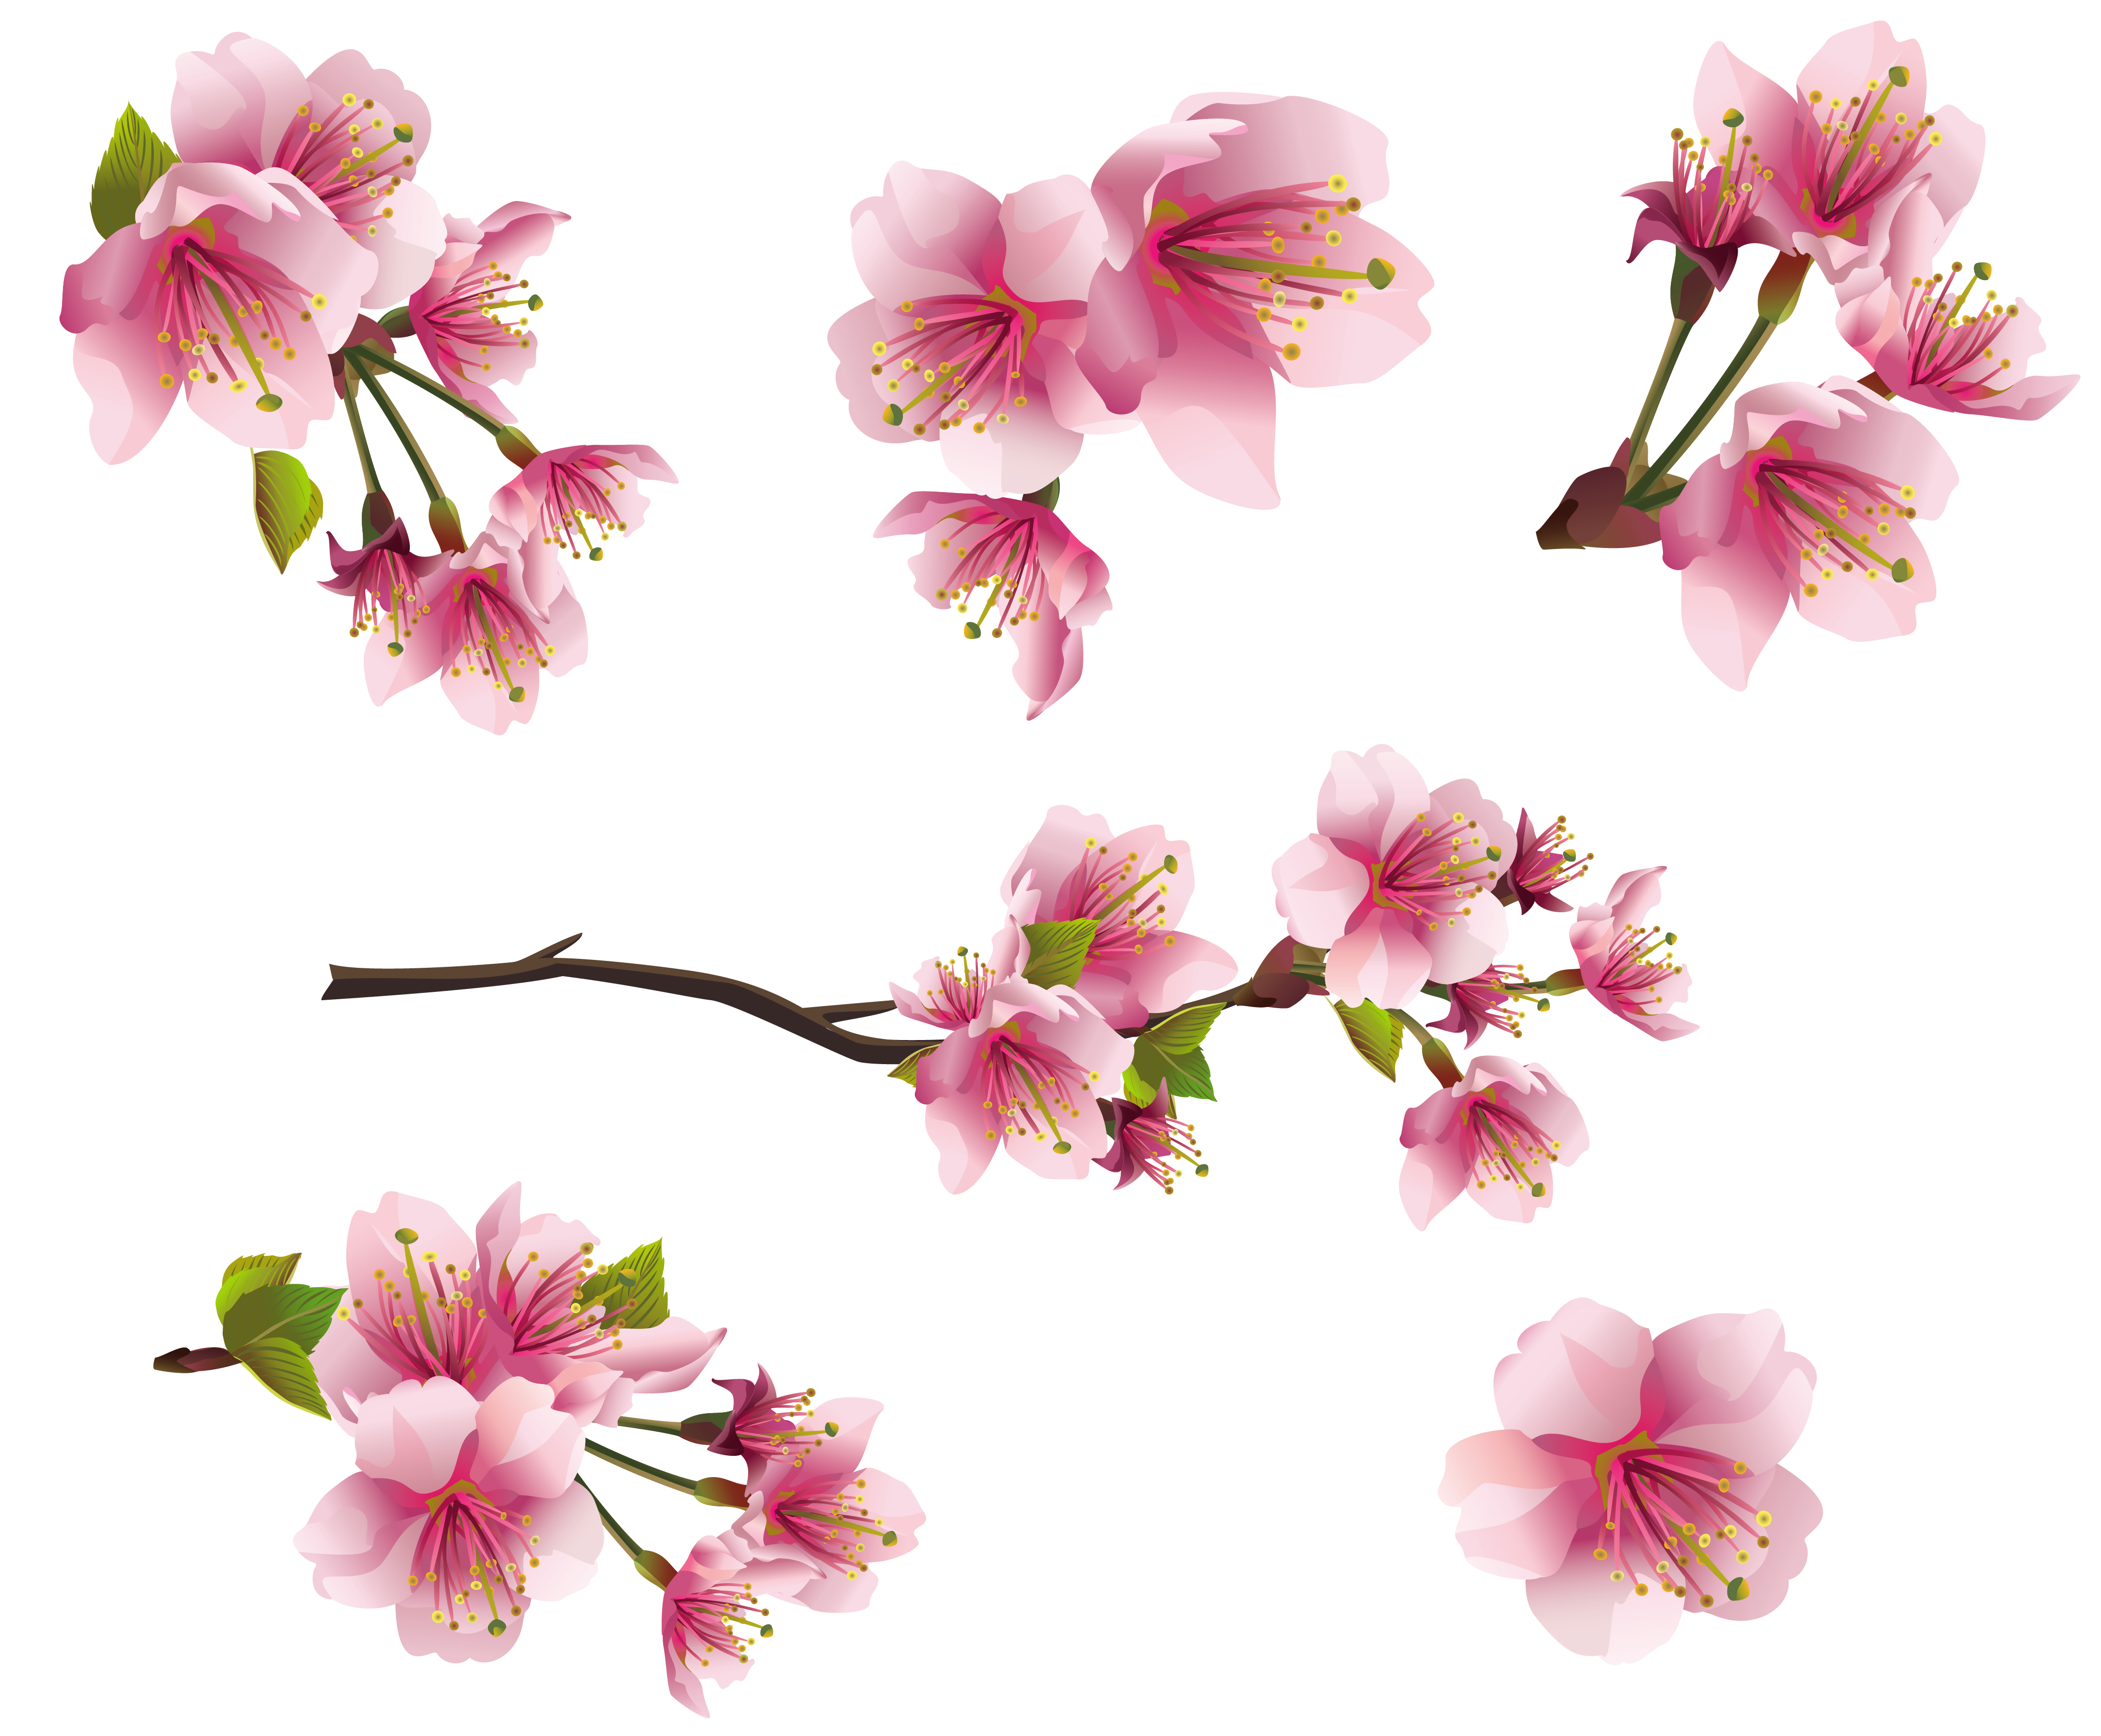 Flower branch png. Tiny flowers transparent images